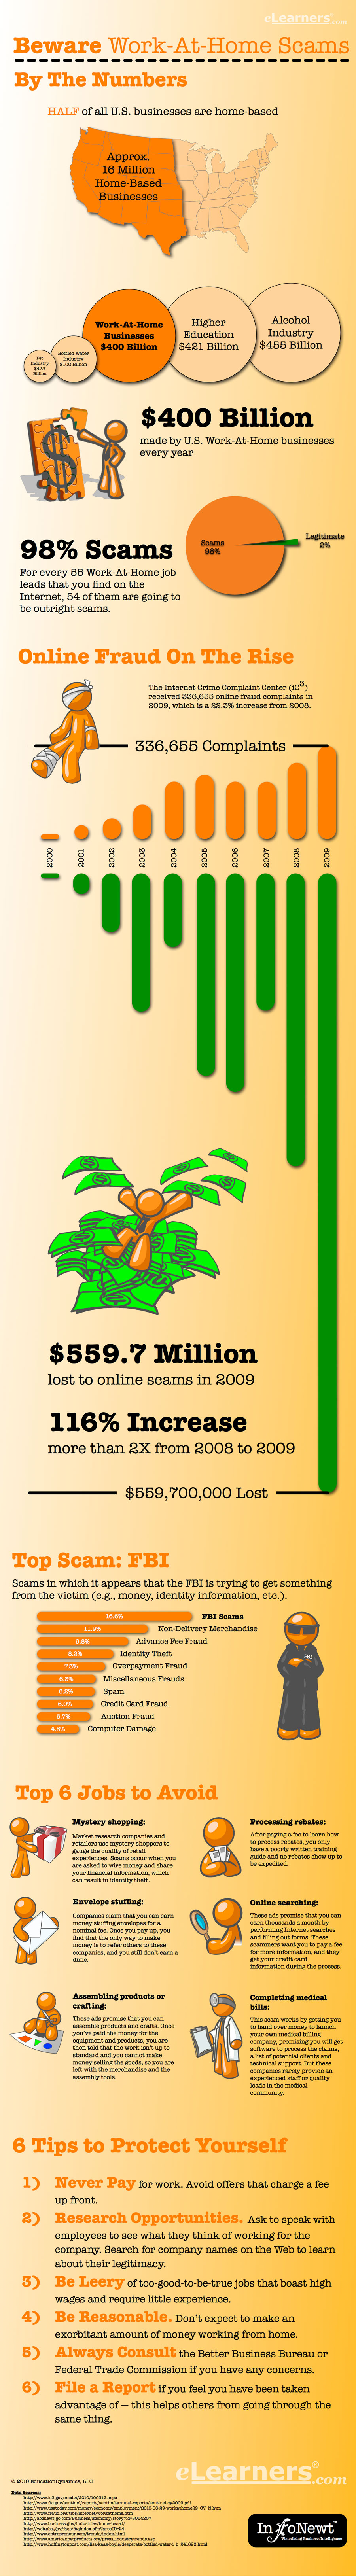 Internet scam infographic